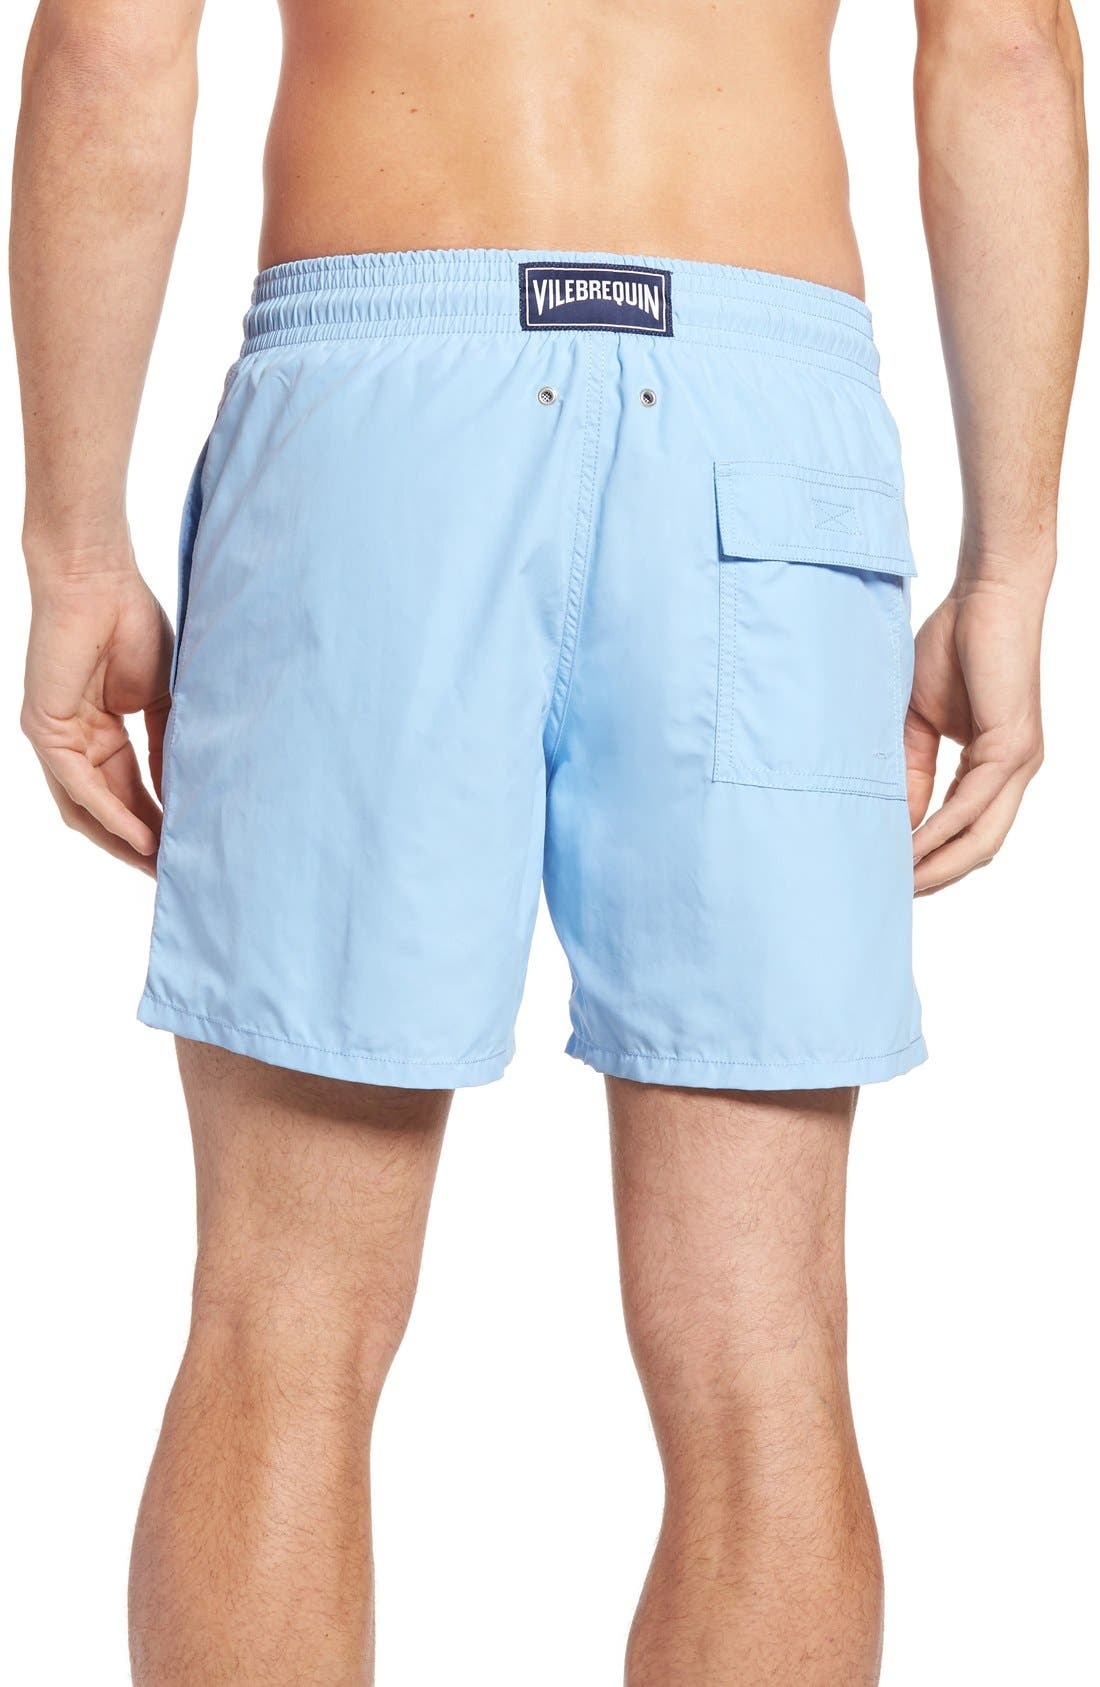 Coral Water Reactive Swim Trunks,                             Alternate thumbnail 2, color,                             450